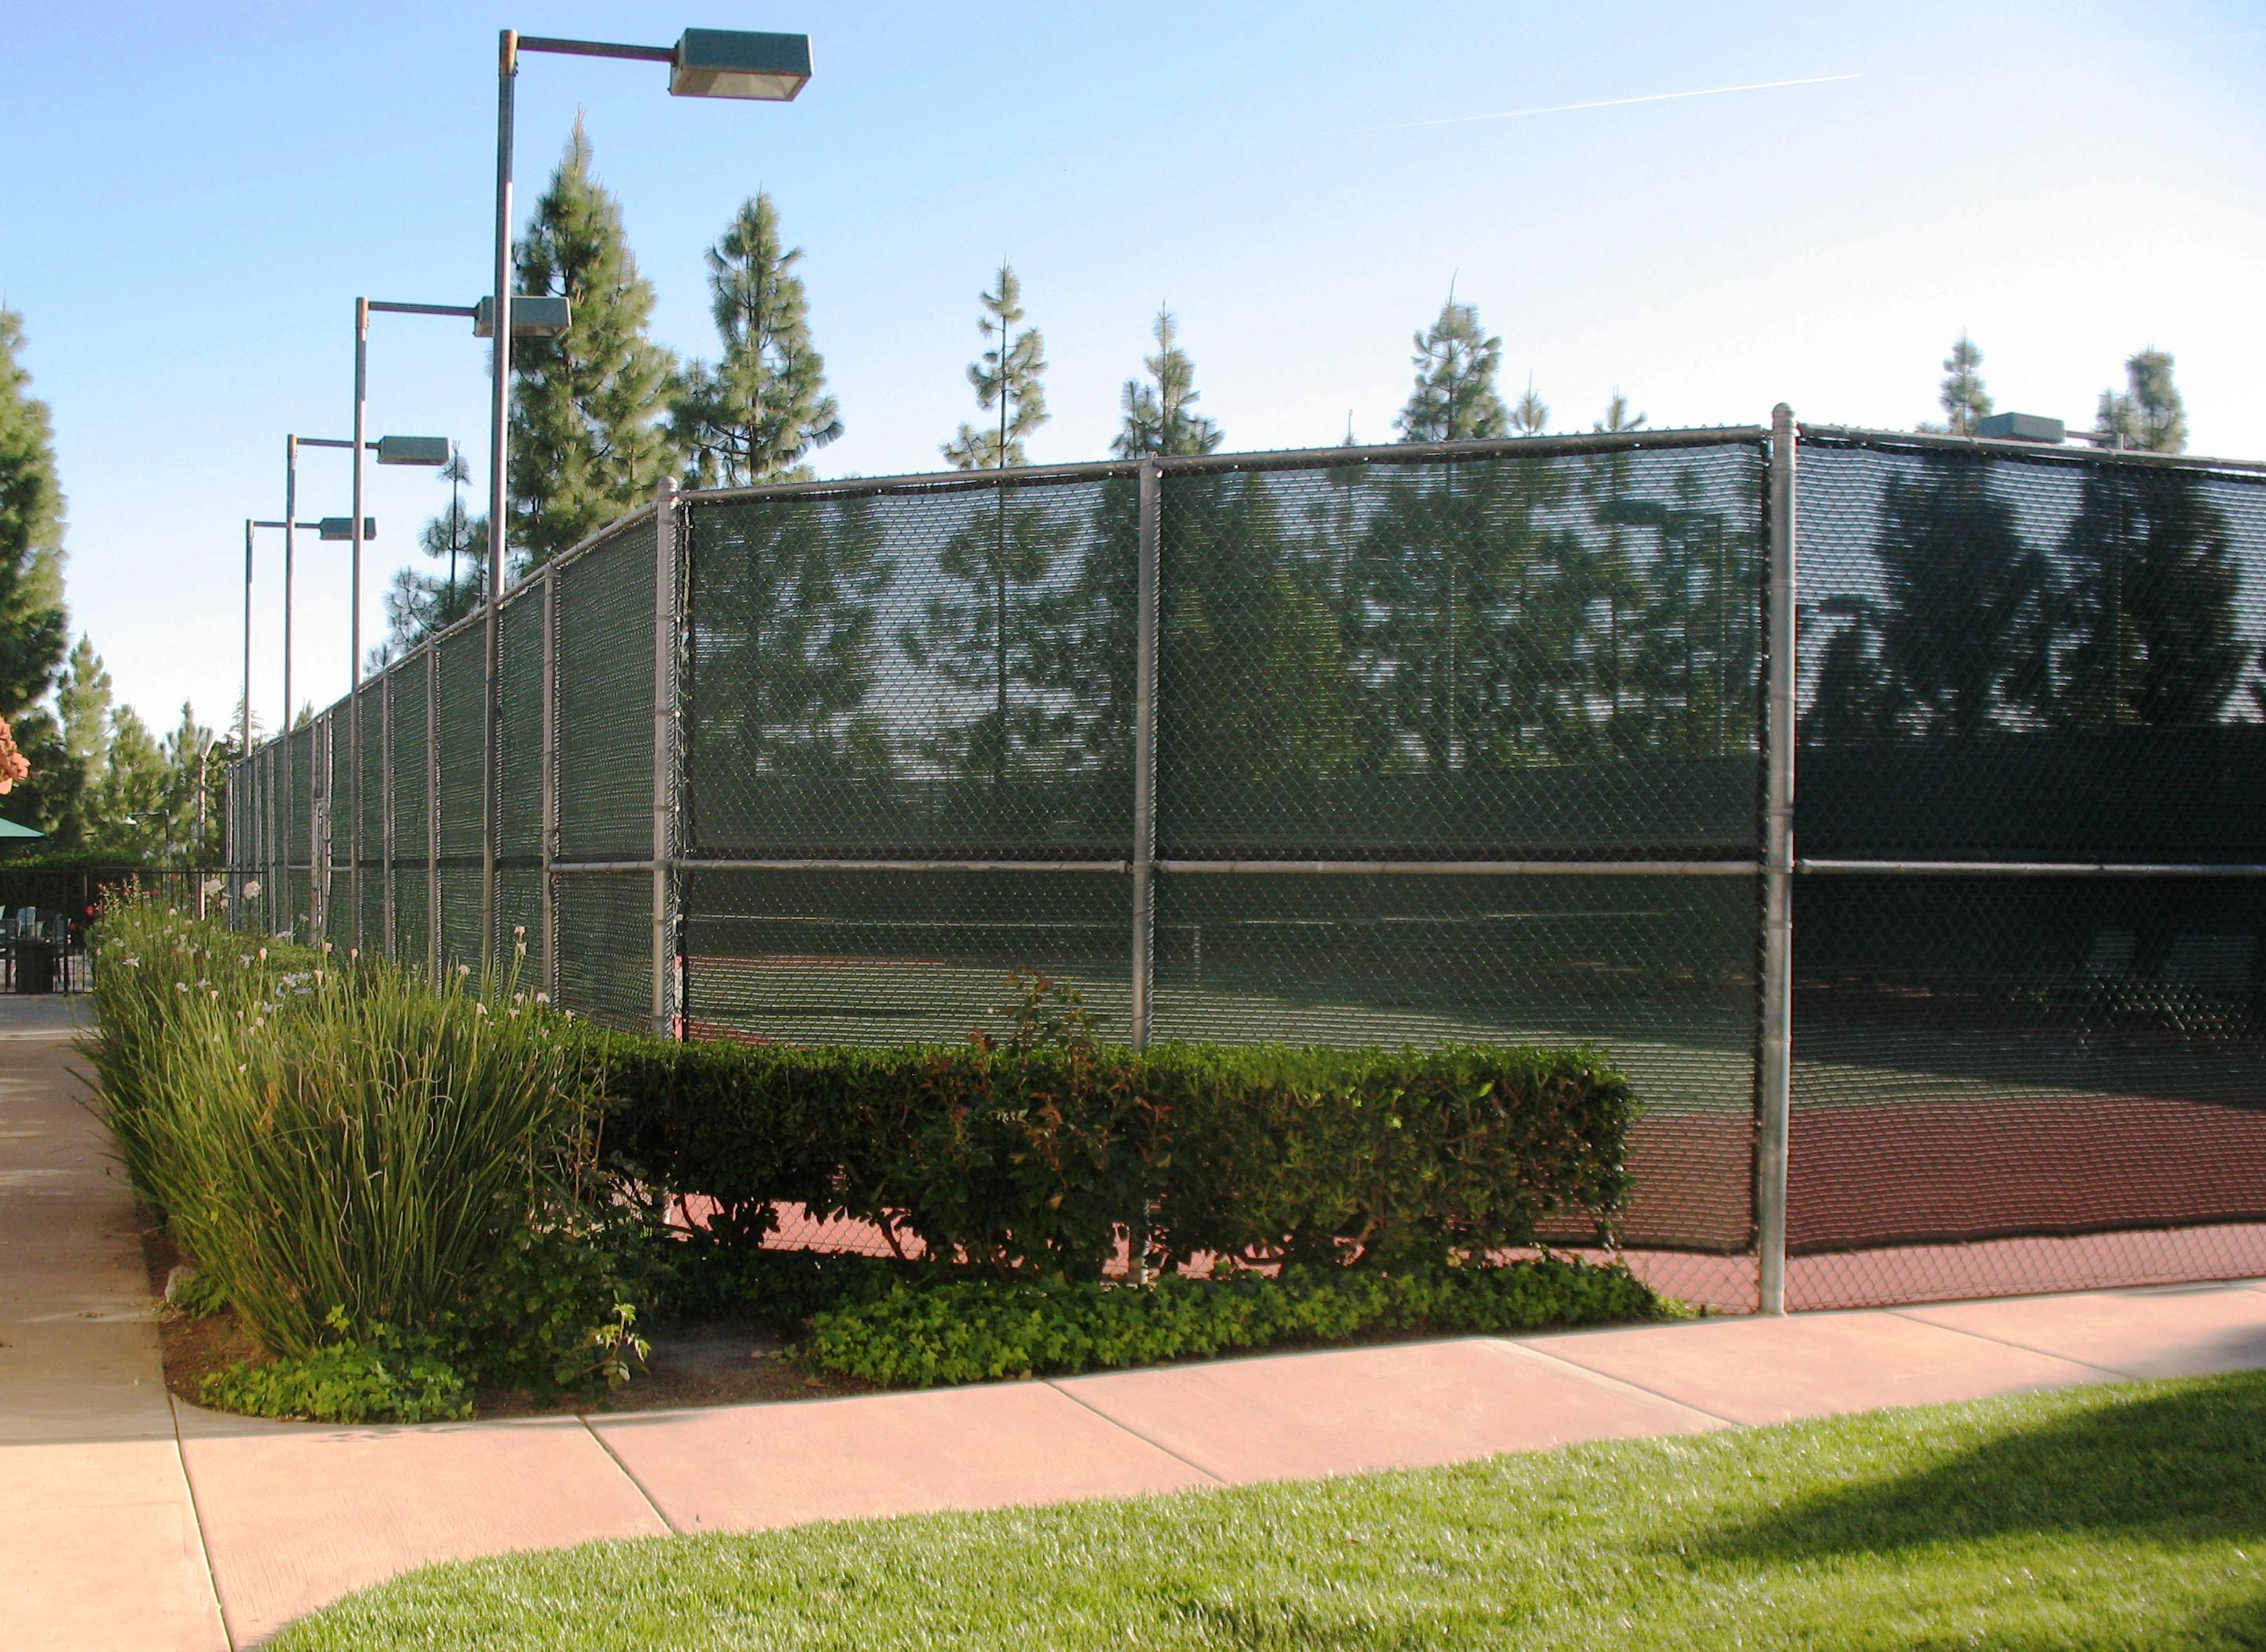 crown-hills-tennis-courts